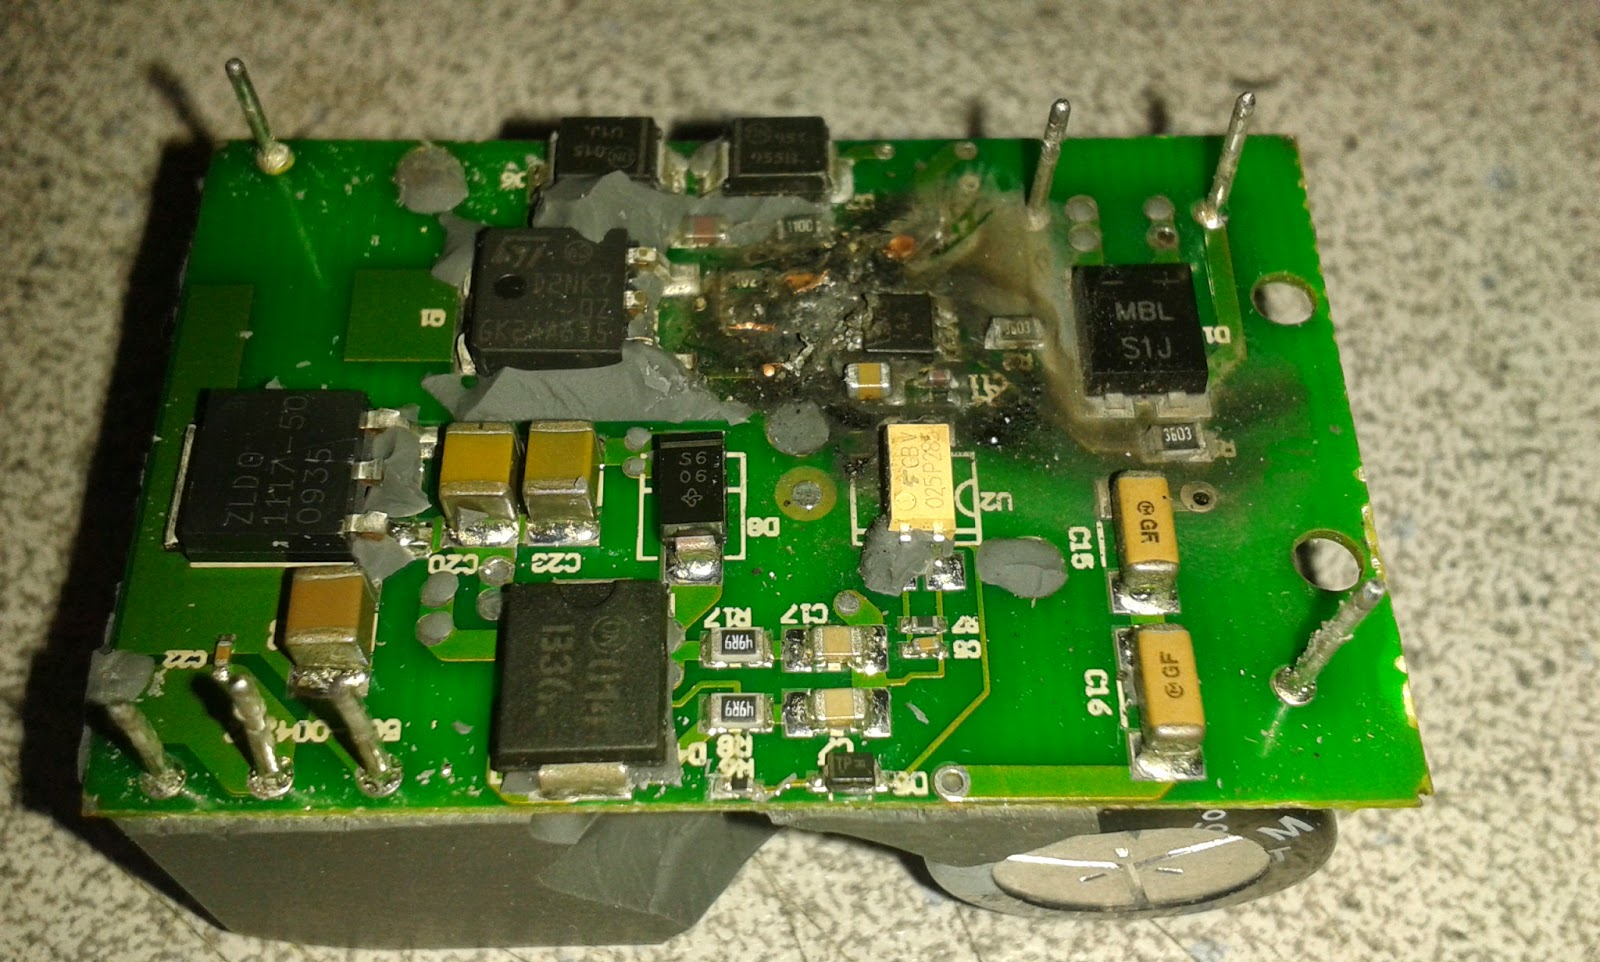 case wiring diagram samsung wiring coppell tv repair online blog repairing voltec spx el 50580 charger on car charger  [ 1600 x 962 Pixel ]